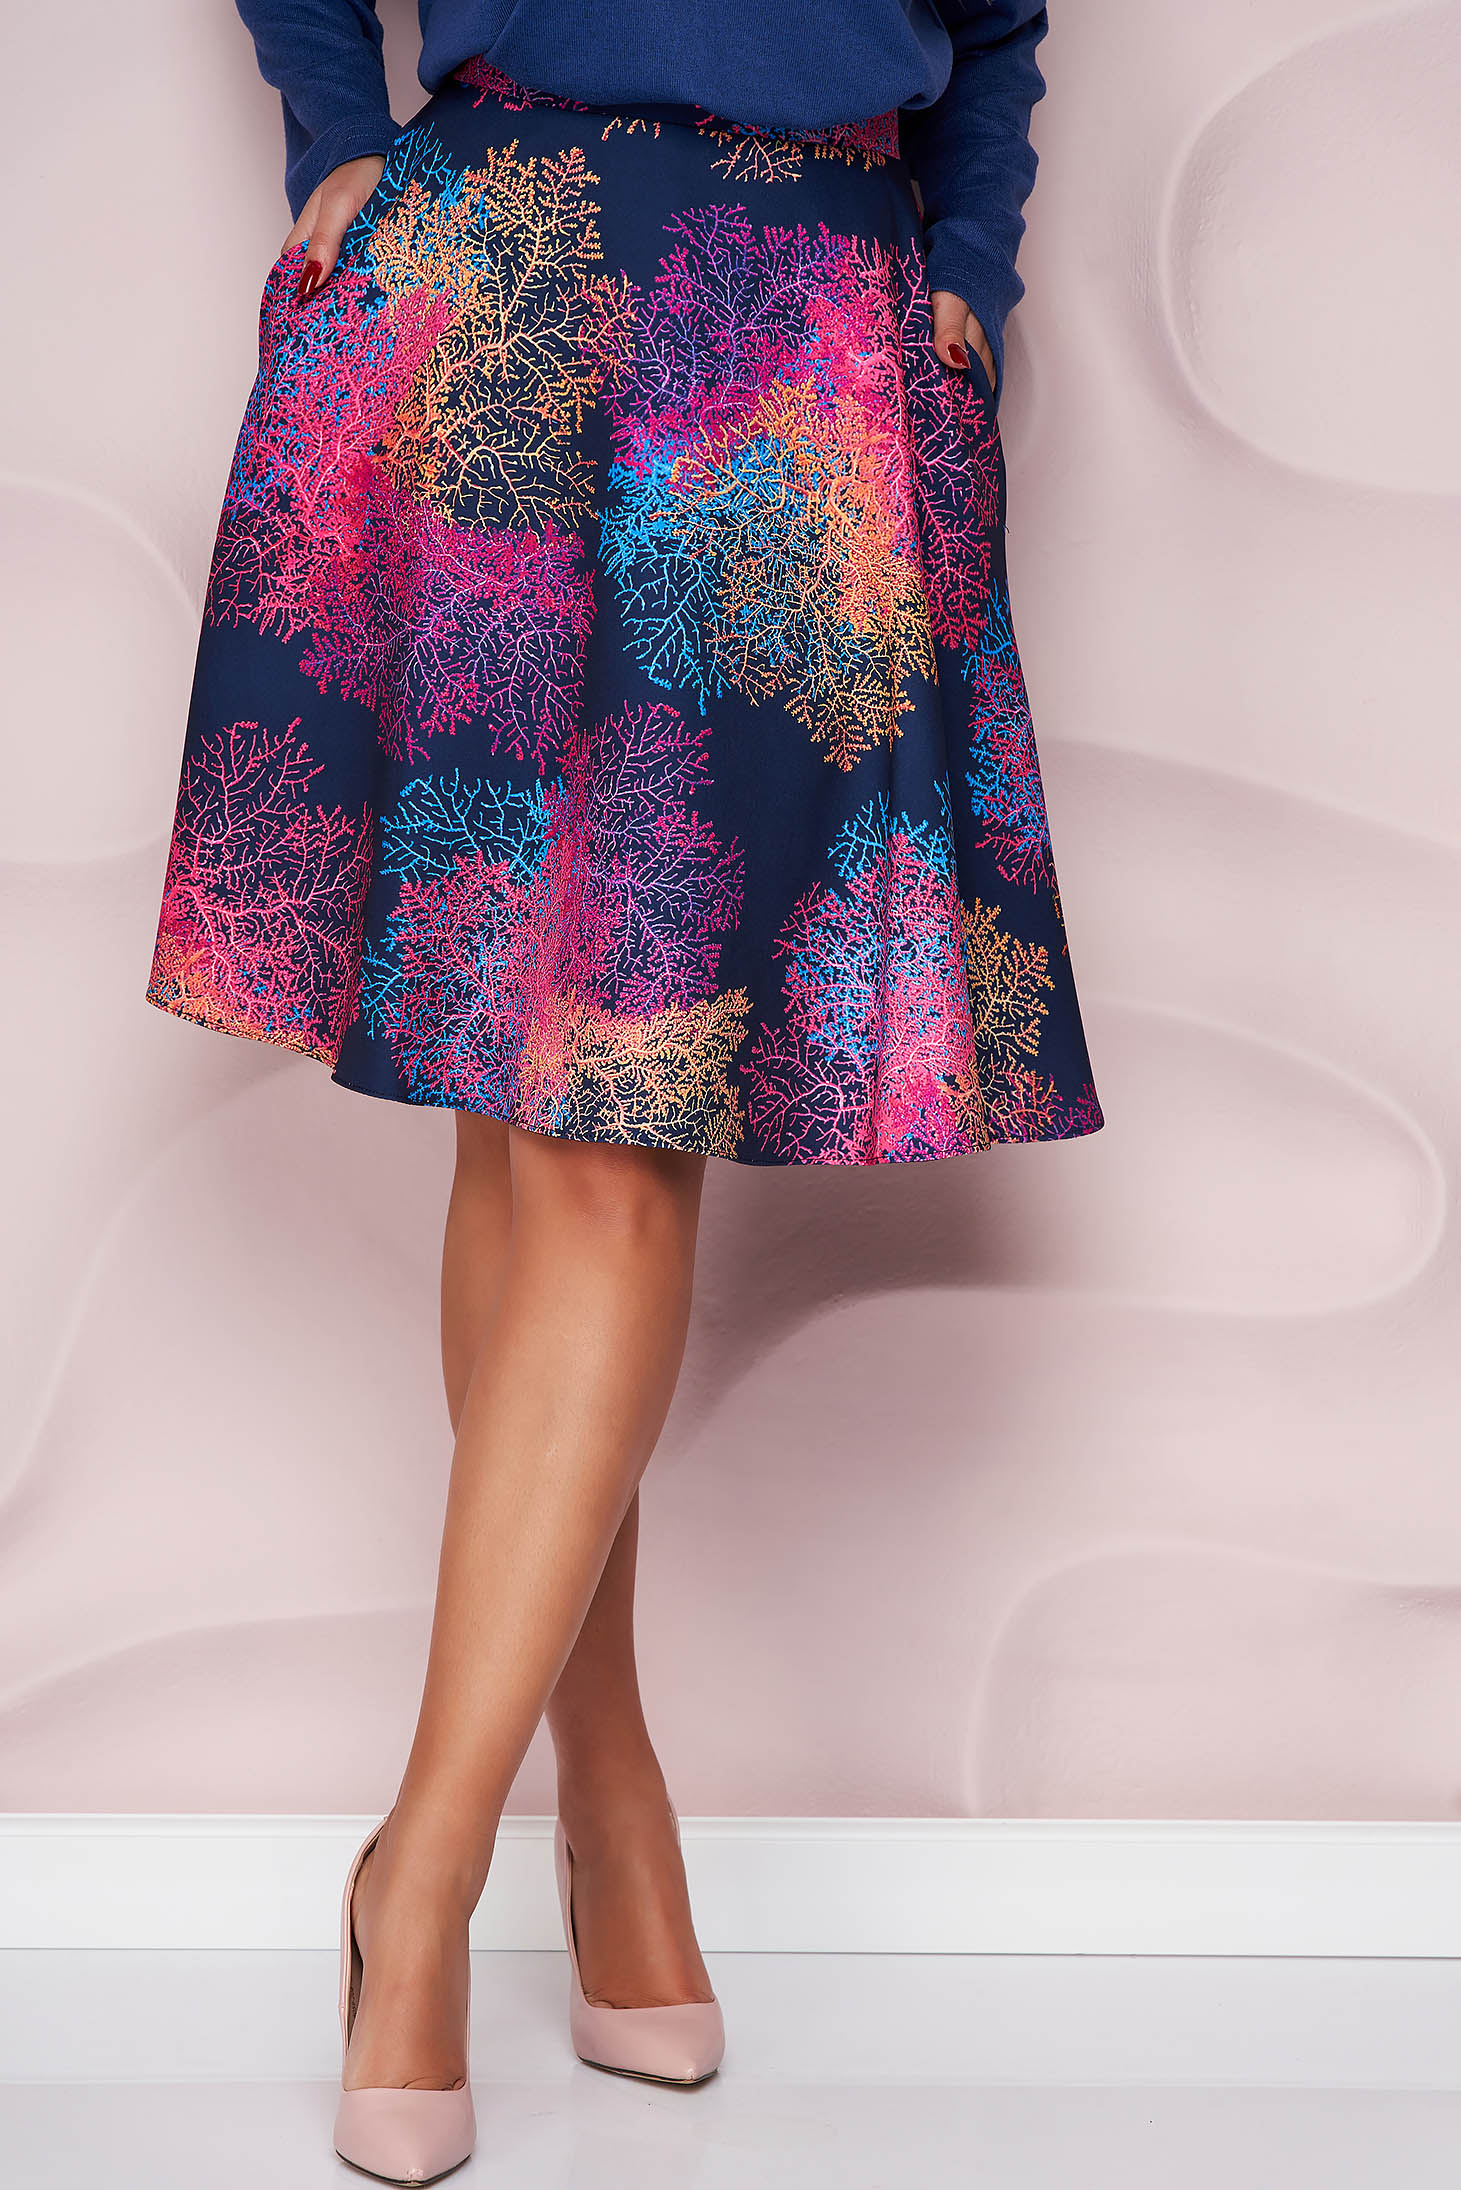 StarShinerS skirt thin fabric office cloche midi with floral print nonelastic fabric